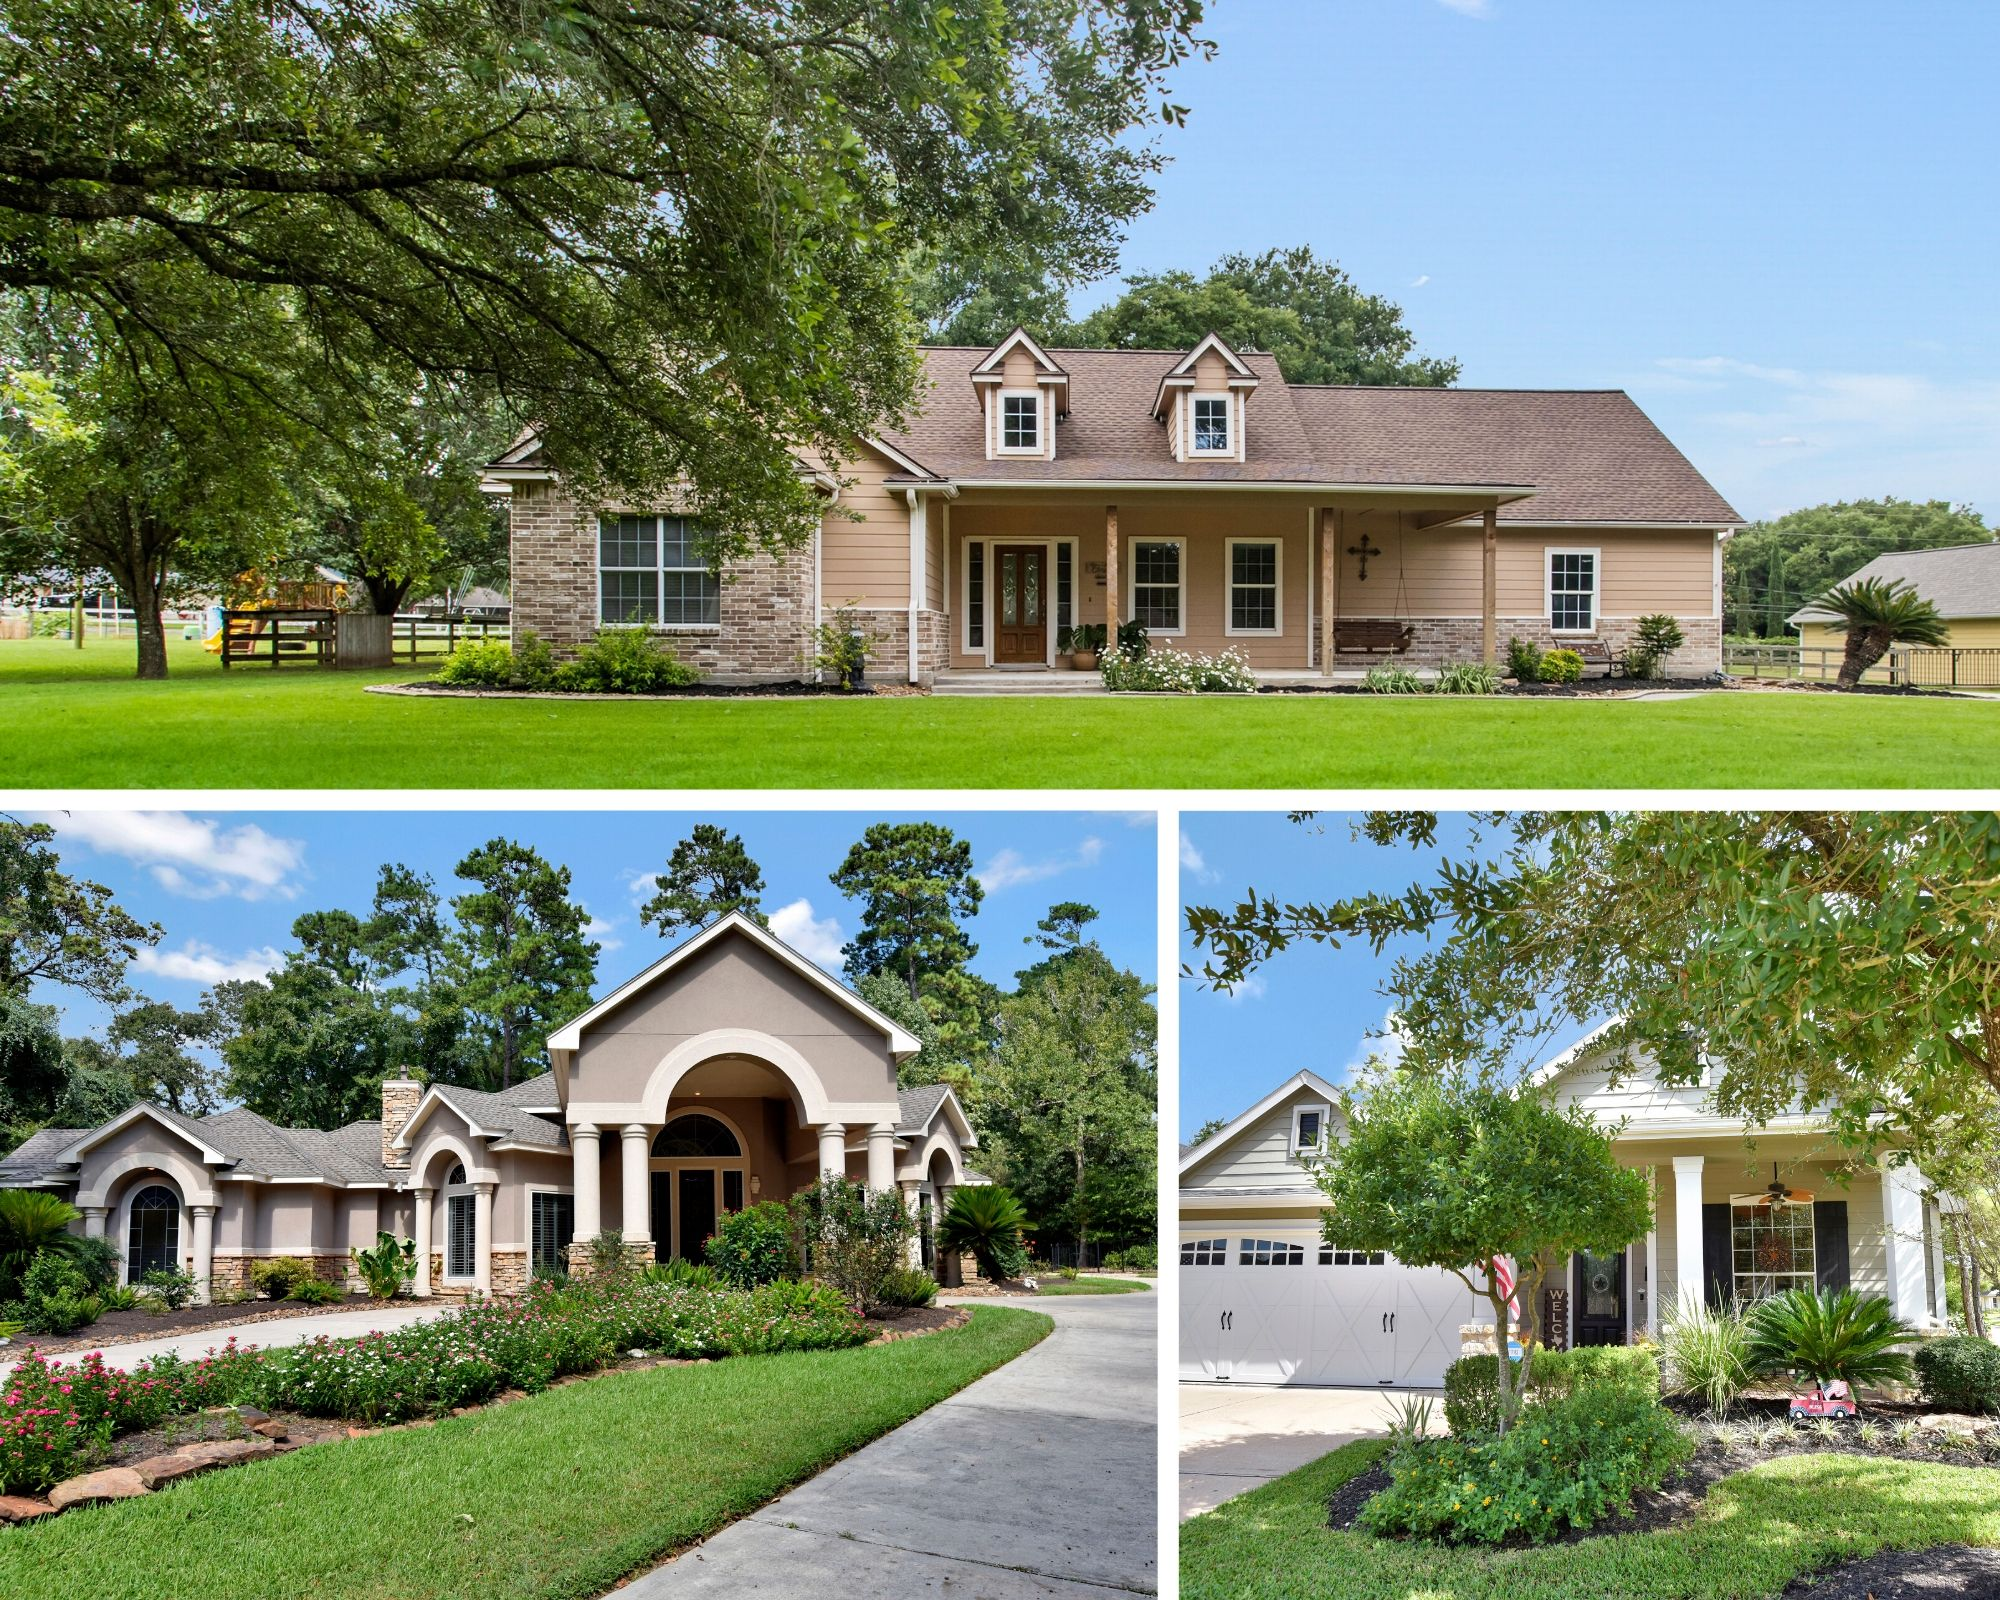 Types of homes in Tomball